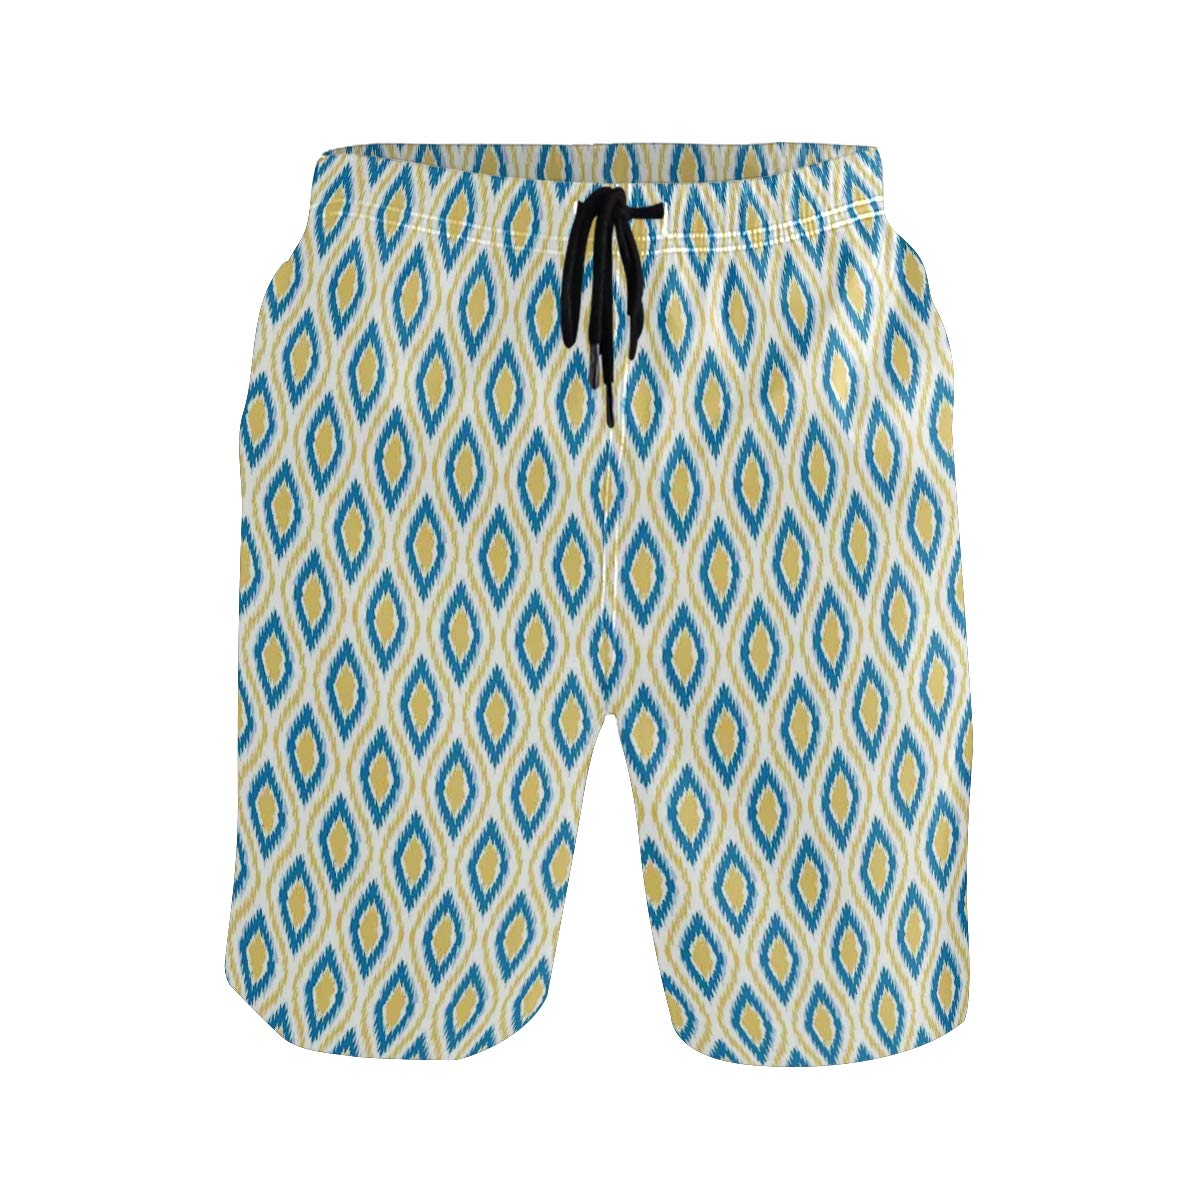 COVASA Mens Summer ShortsAsian Style Ikat Motifs with Colored Patterns Indones